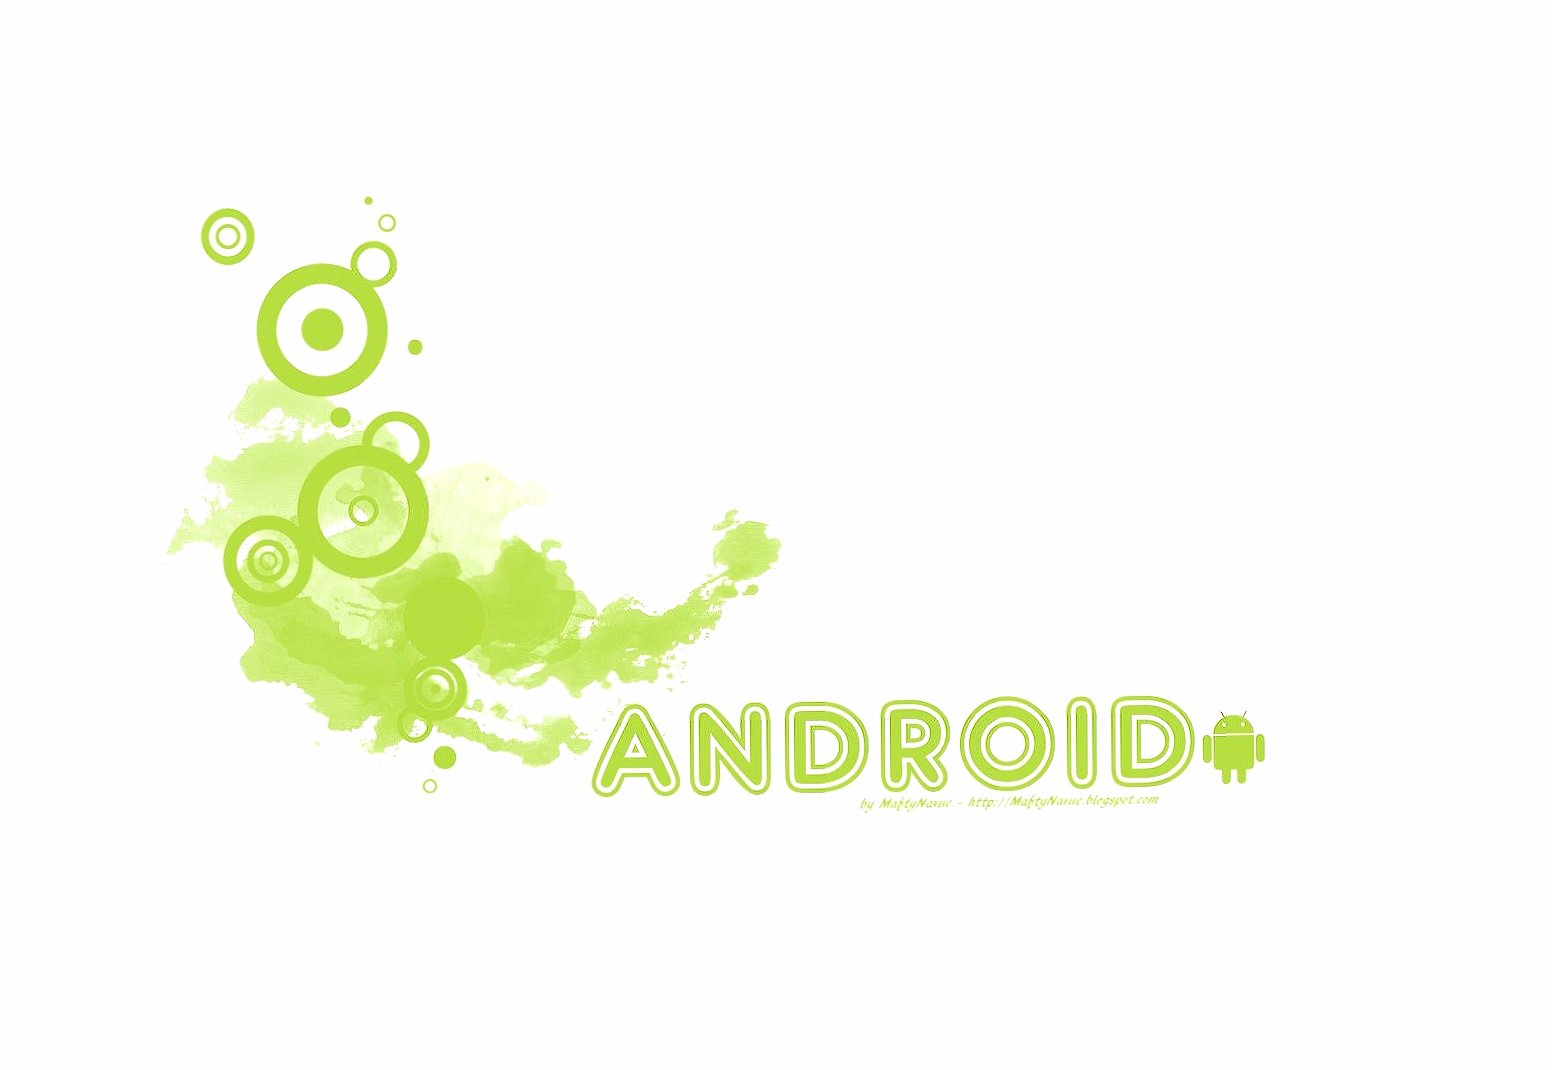 Abstract android wallpapers HD quality